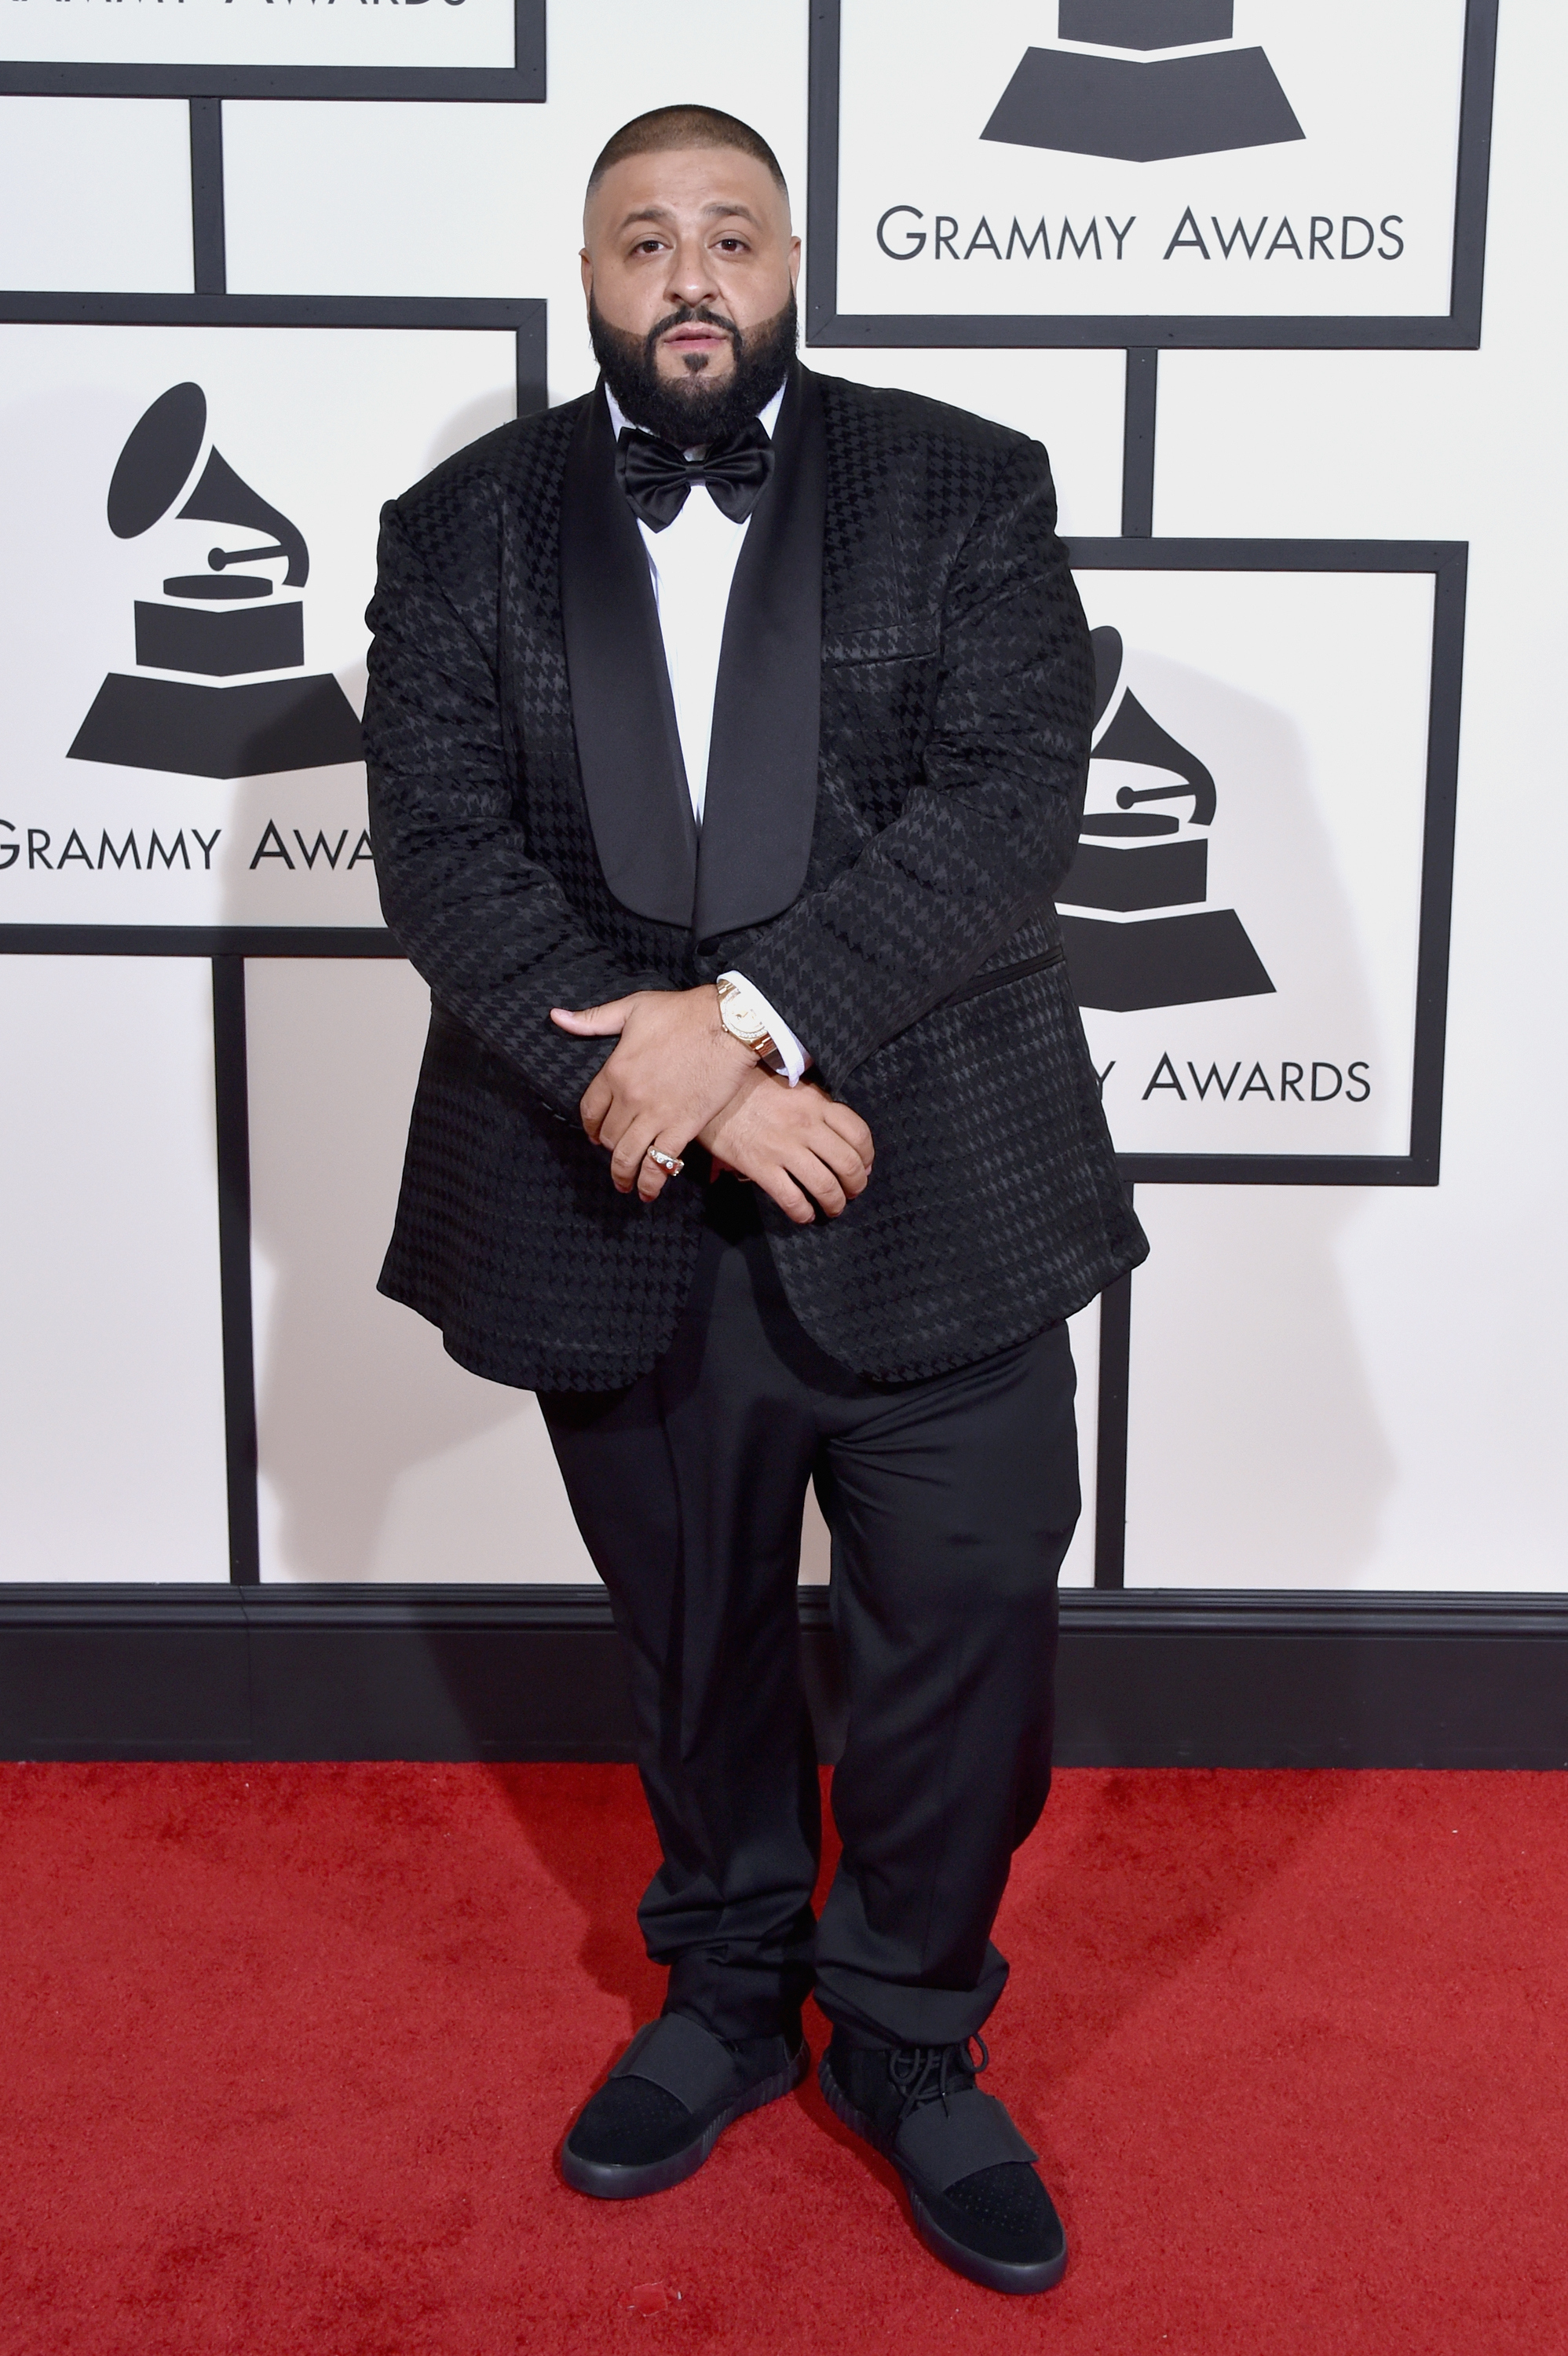 DJ Khaled attends the 58th GRAMMY Awards at Staples Center on Feb. 15, 2016 in Los Angeles.